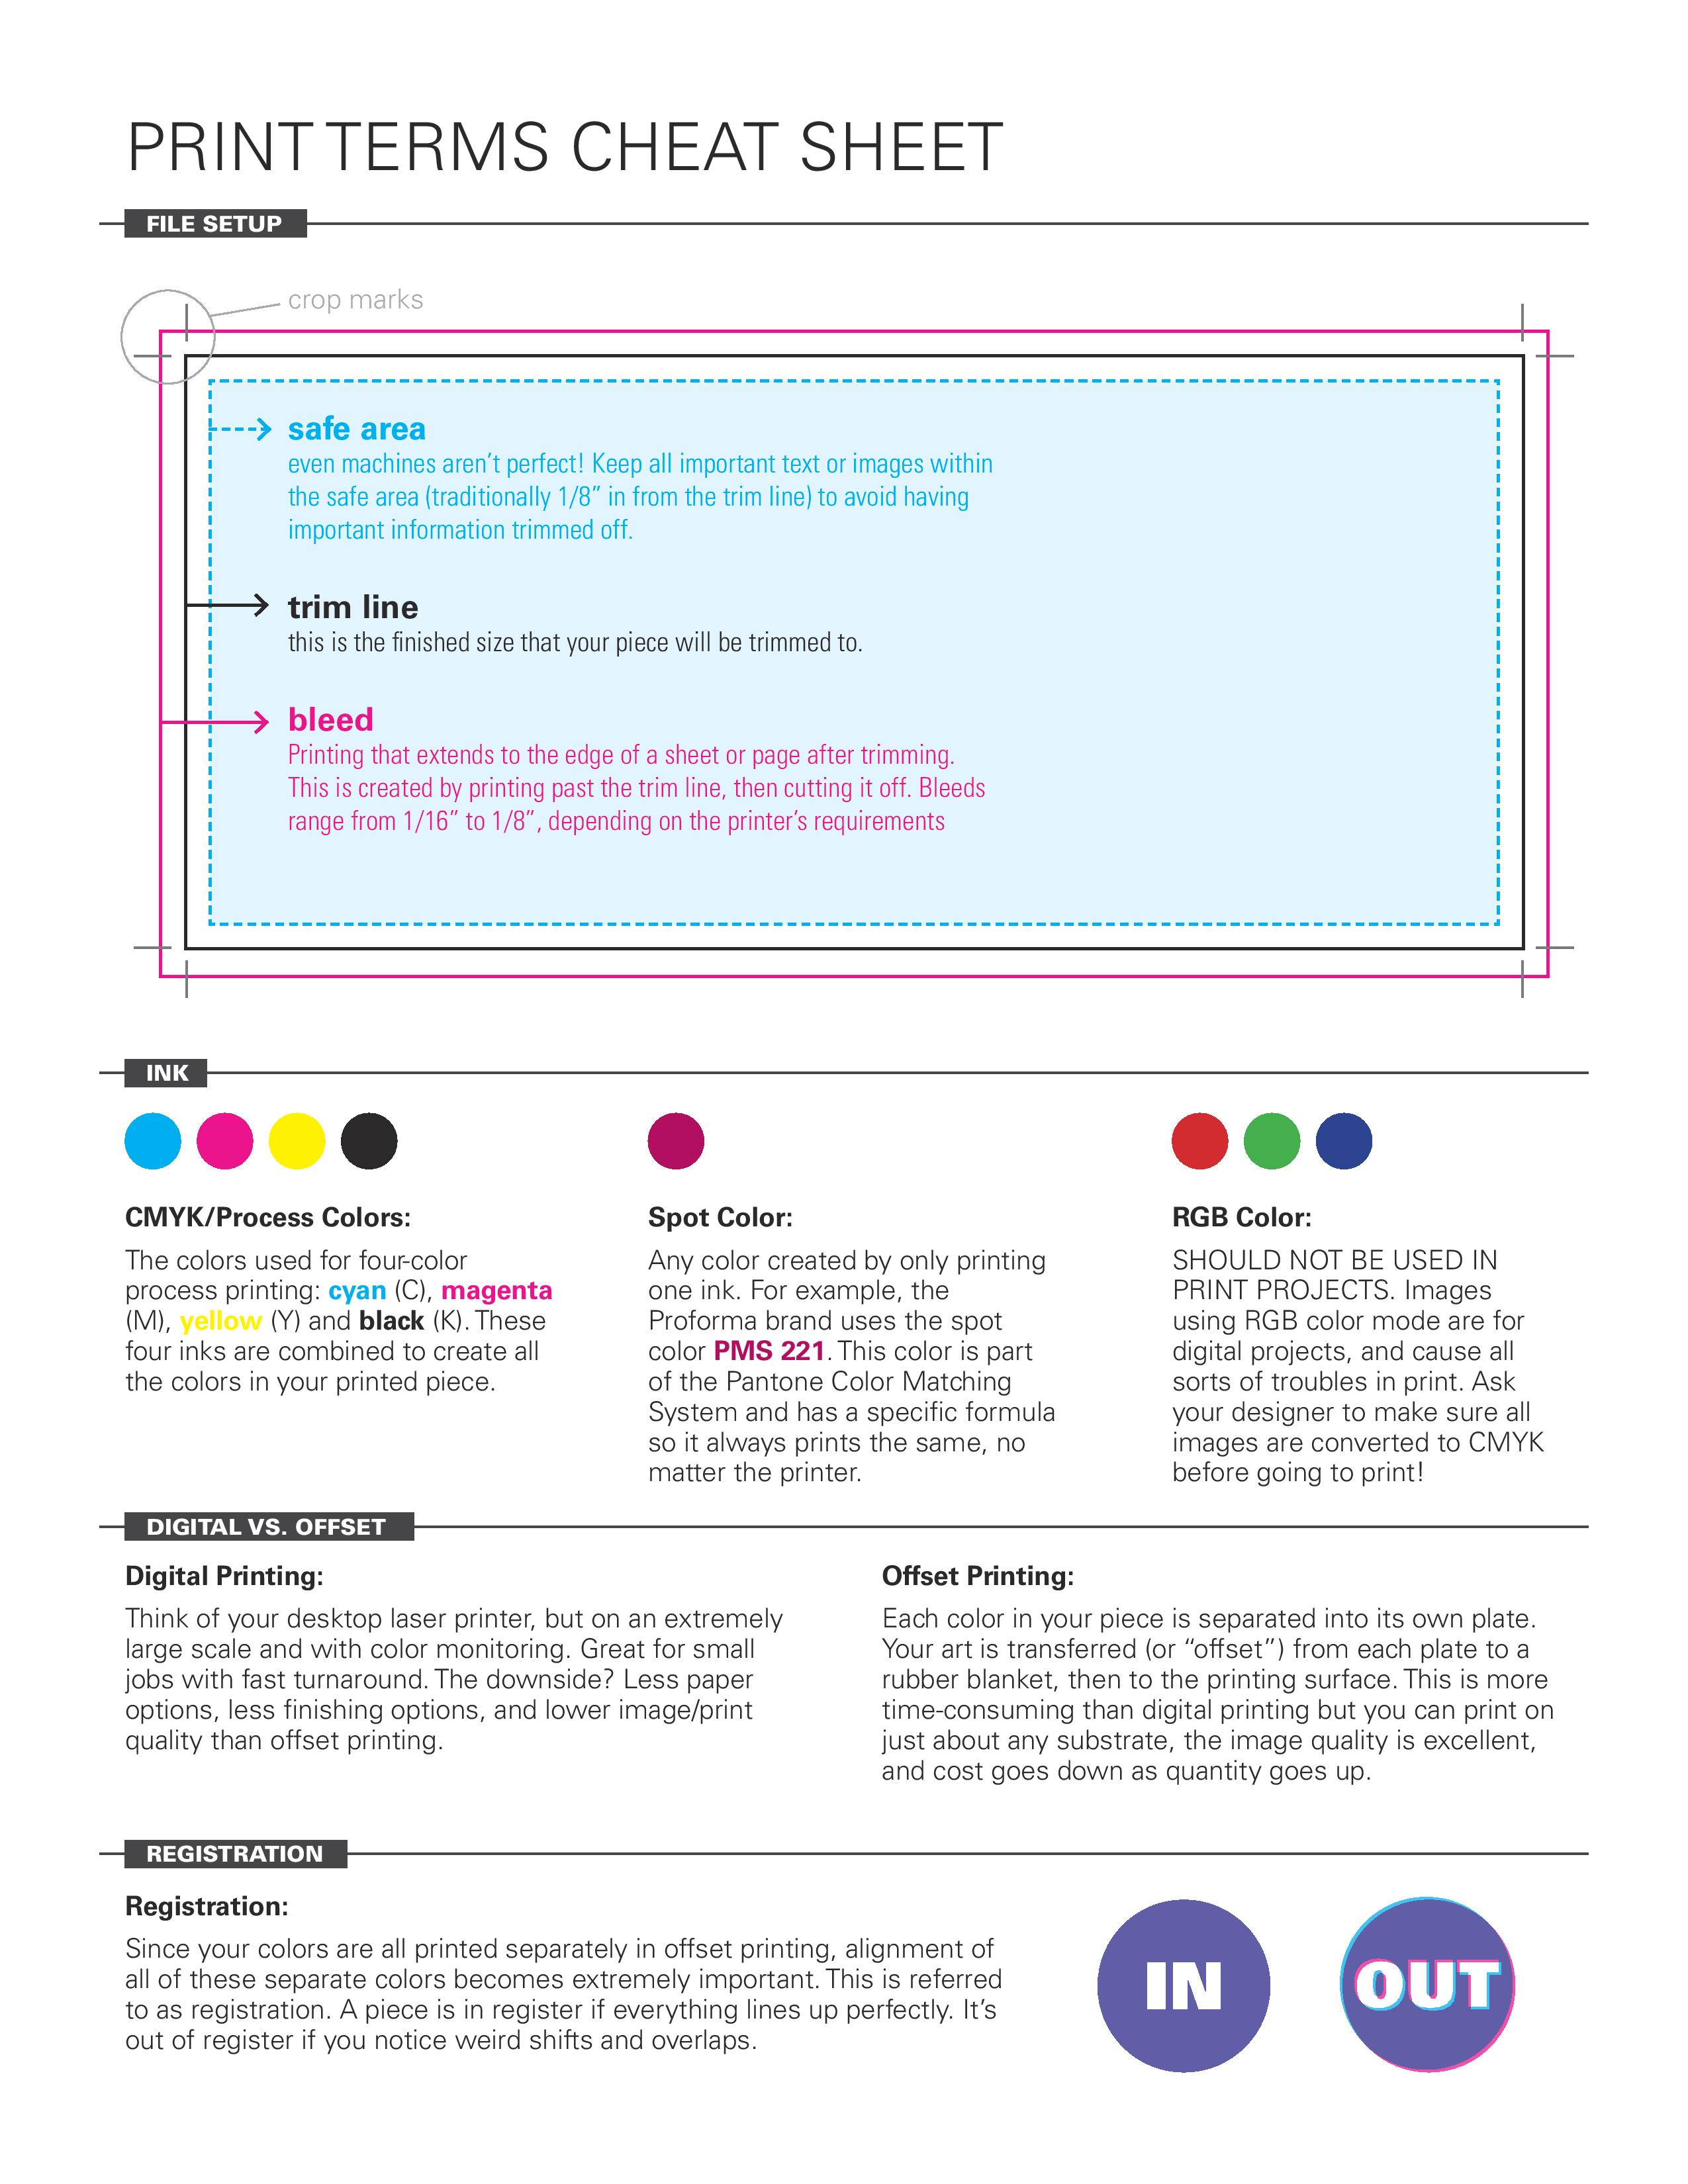 Graphic Designers Cheat Sheets That Simplify Design Elements Print Terms More